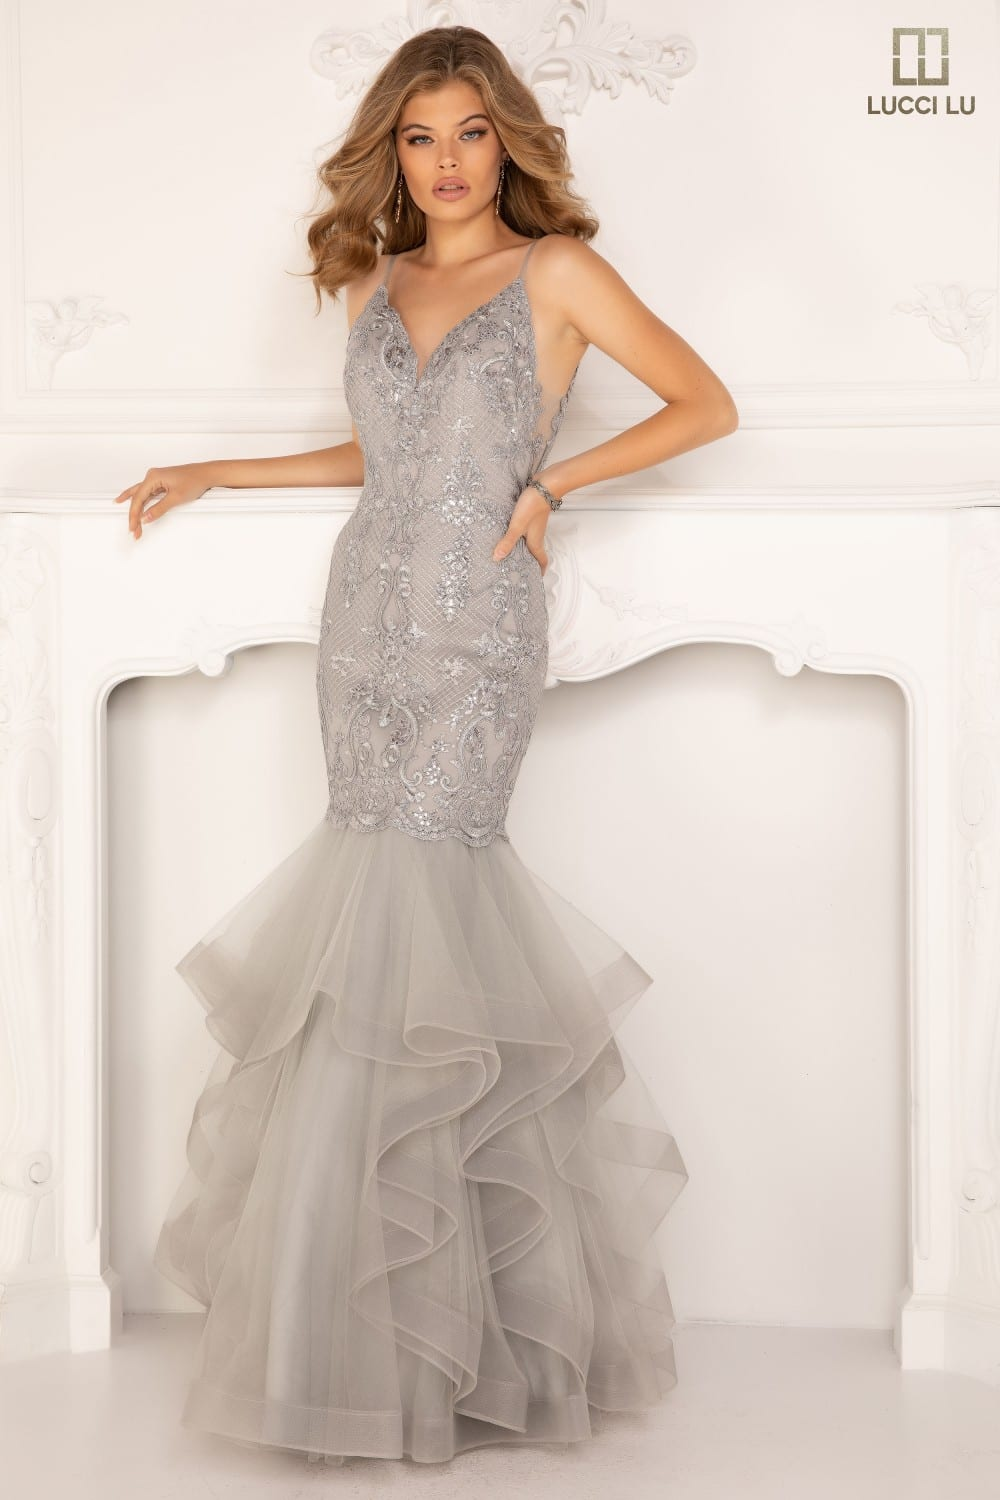 Mermaid gown with a v-neck bodice, beaded embroidery, spaghetti straps, open back, illusion sides, and tulle ruffles with a horsehair hem.